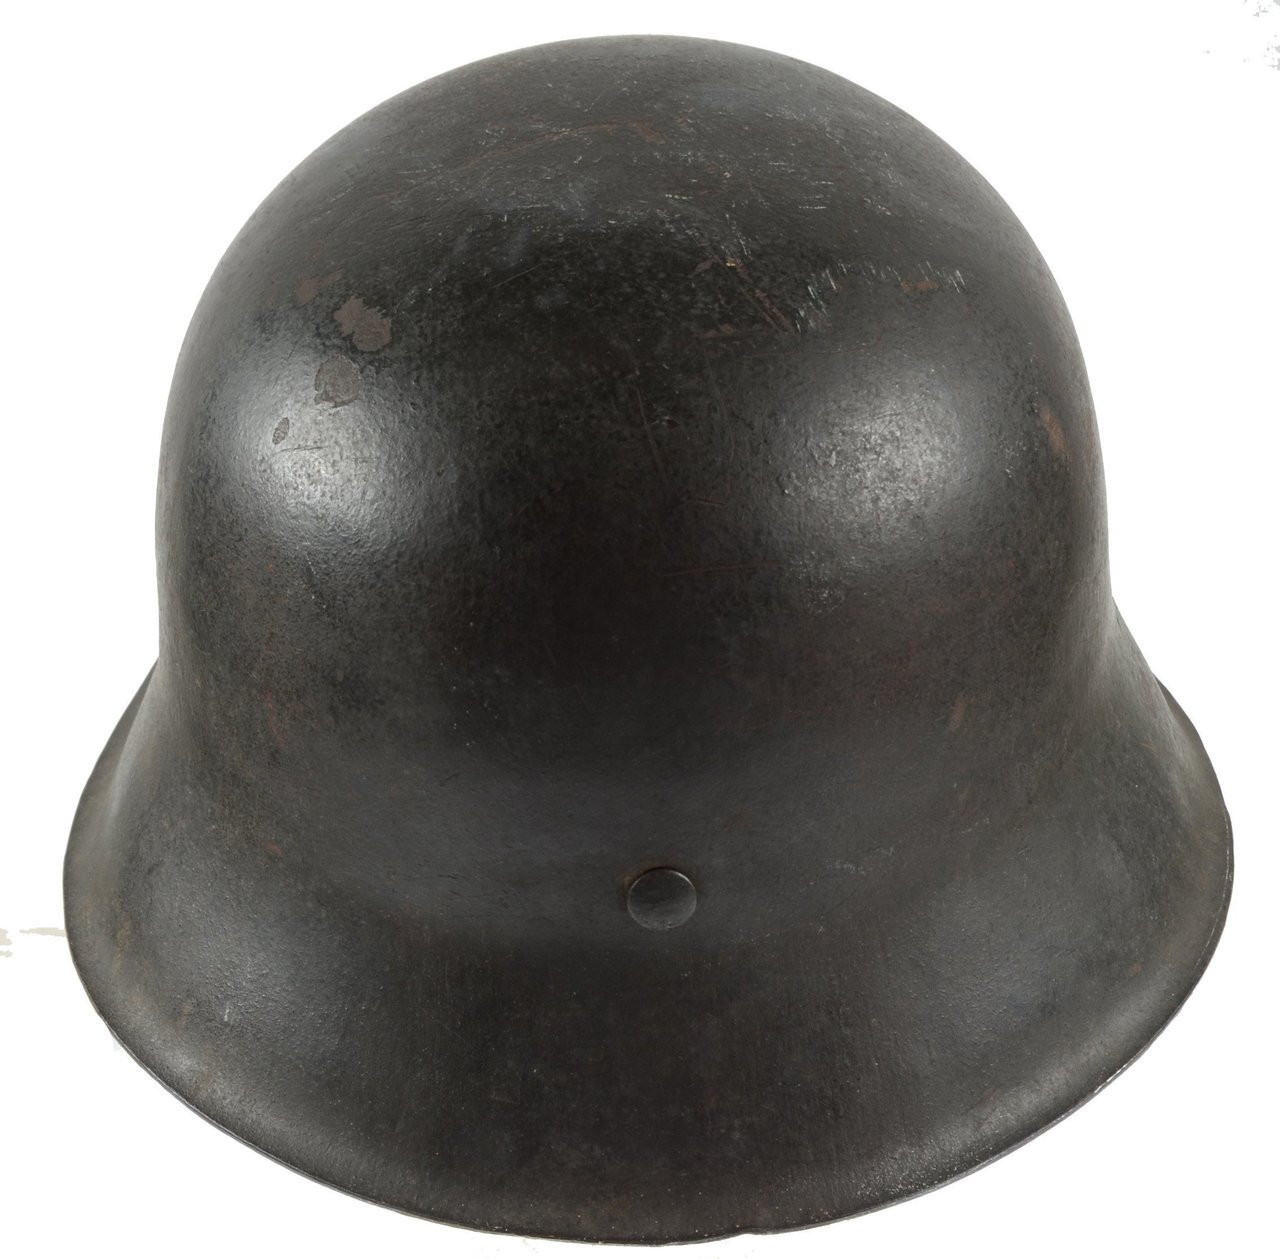 GERMAN WW2 M42 ARMY HELMET - C22015